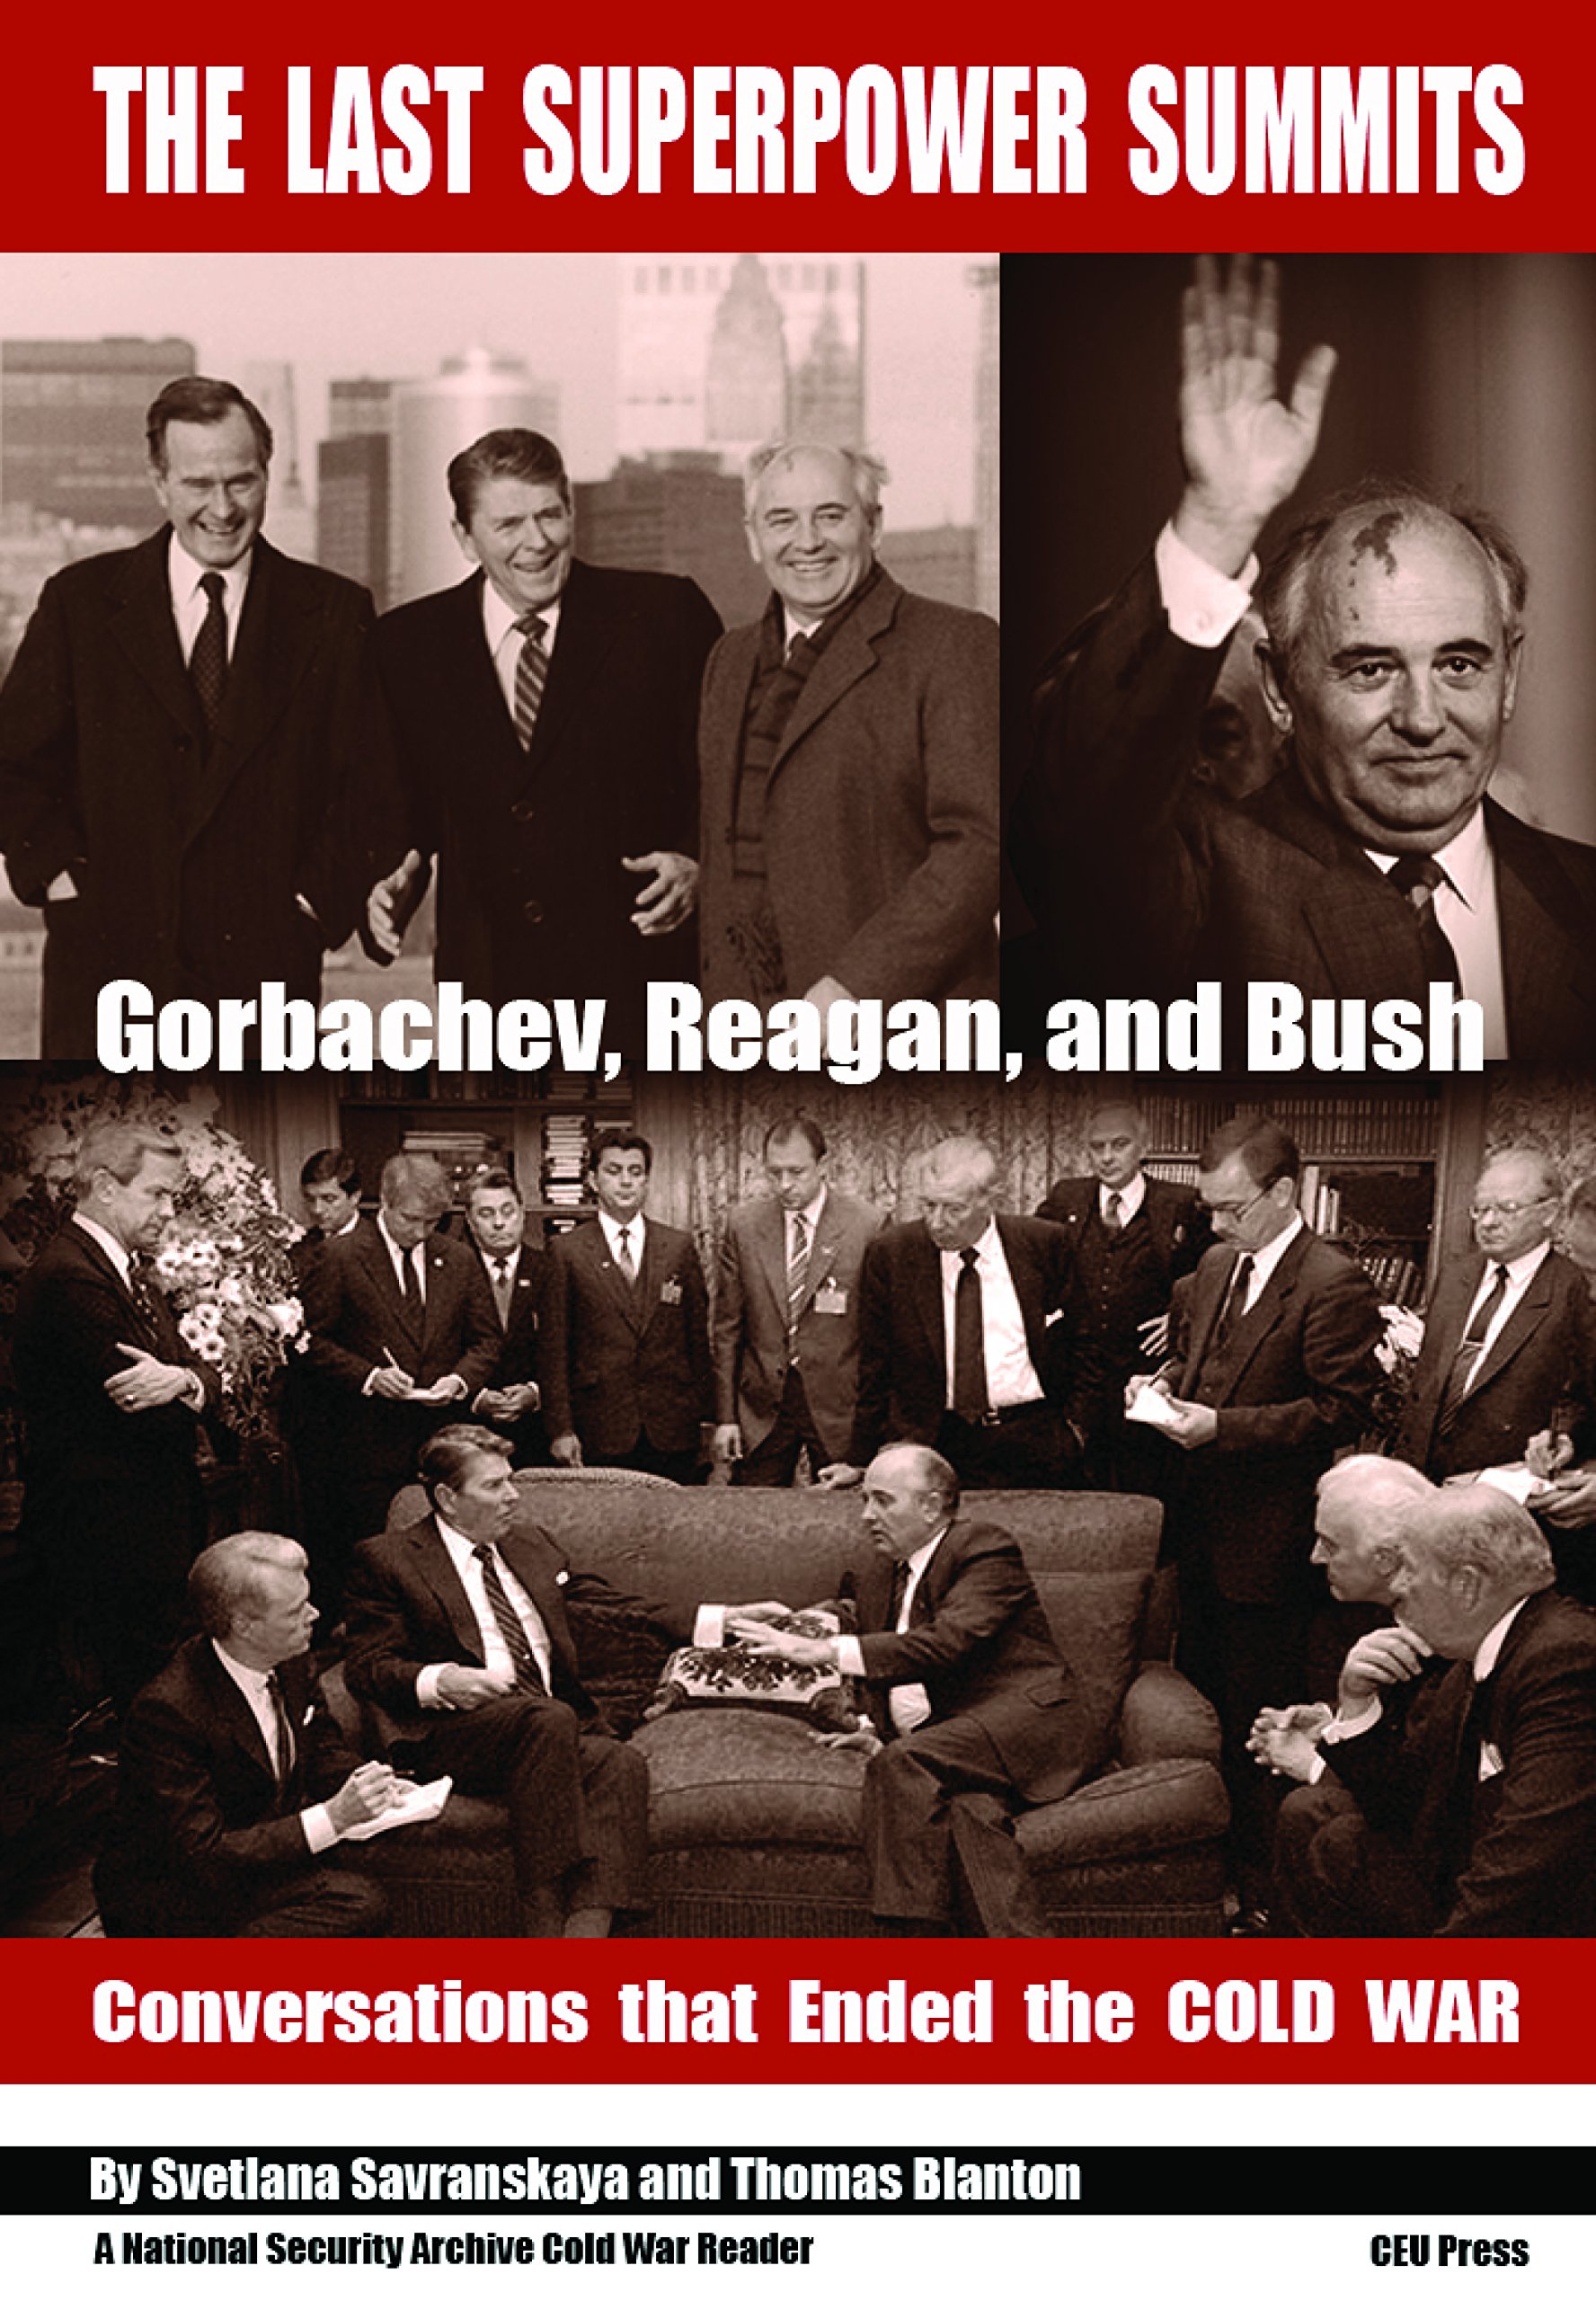 The Last Superpower Summits-Reagan, Gorbachev and Bush at the End of the Cold War (National Security Archive Cold War Reader) (National Security Archive ...